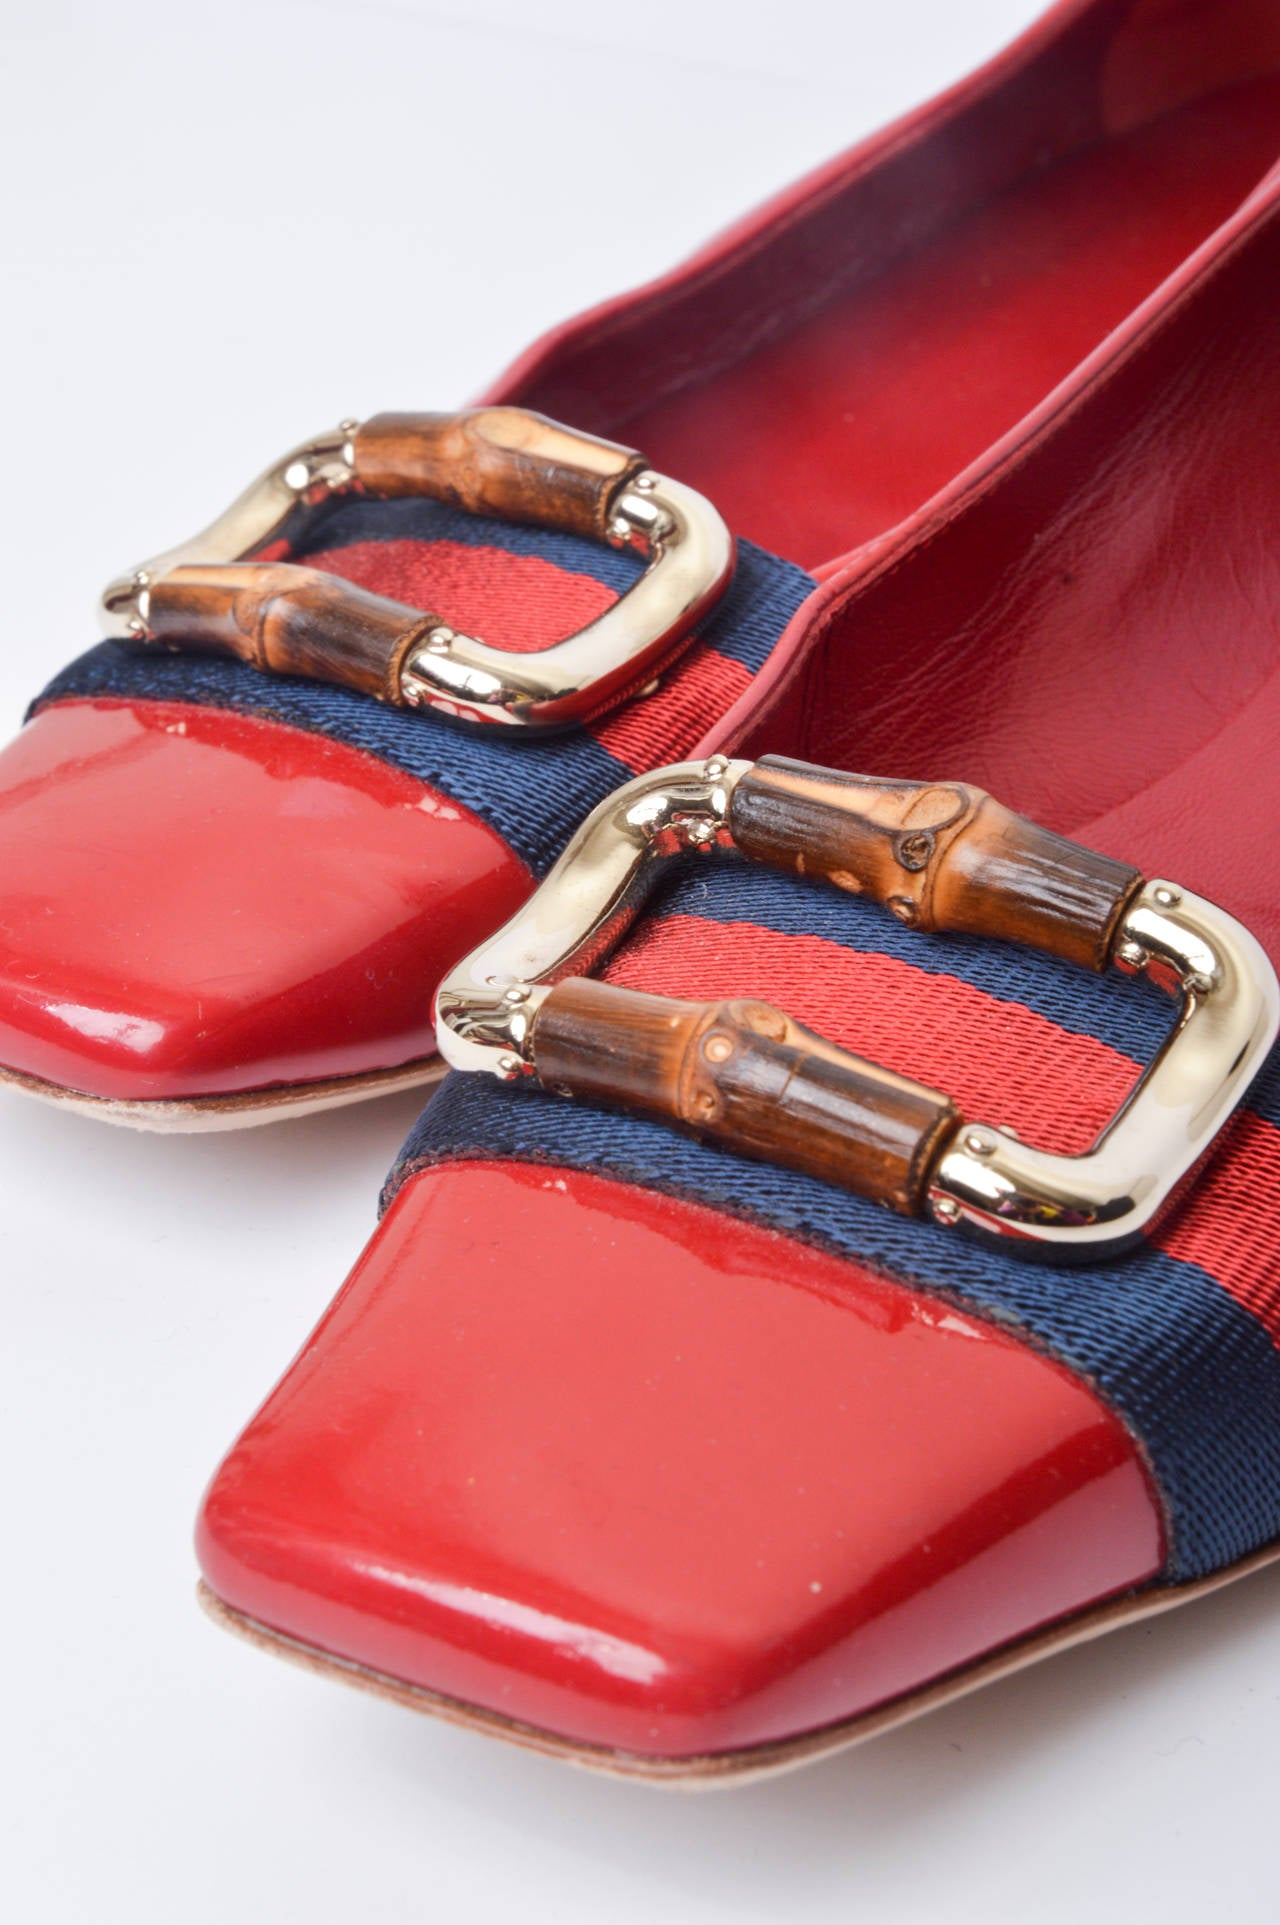 Gucci Red Patent Leather Mod Flats Size 8 6